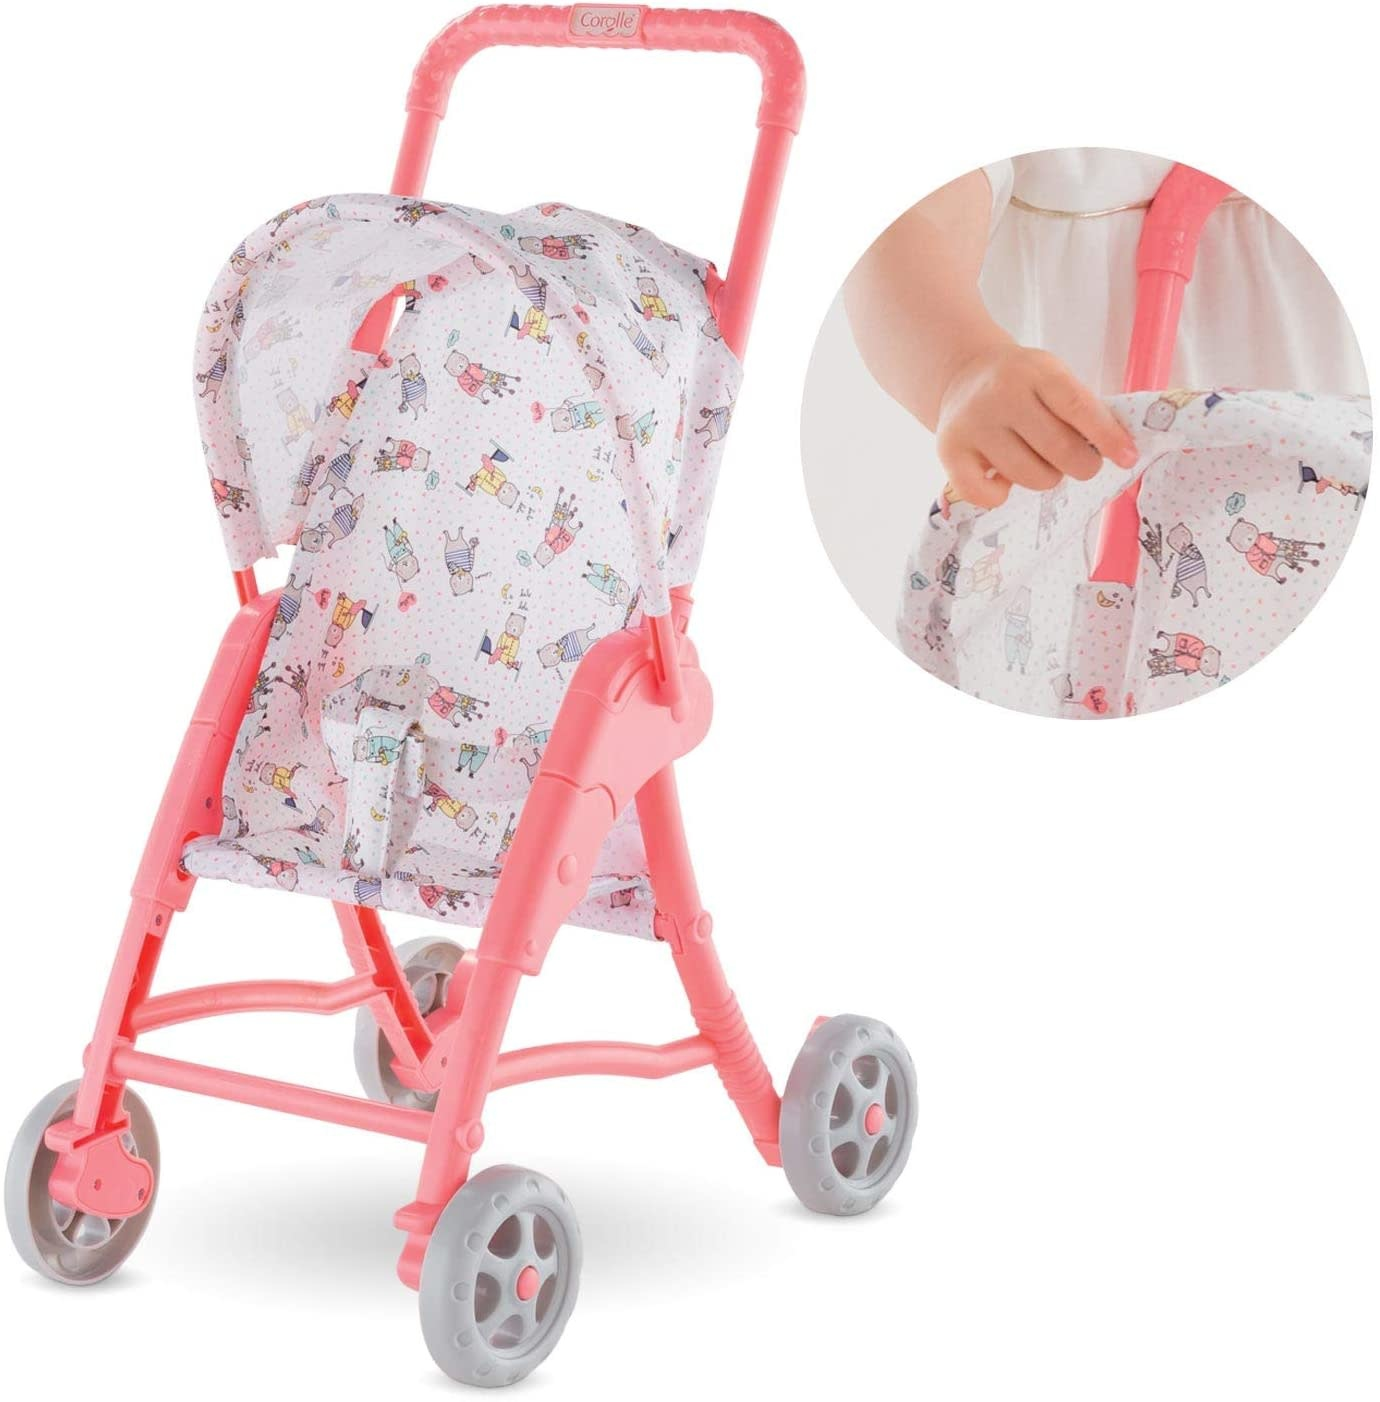 Baby Doll Stroller by Corolle